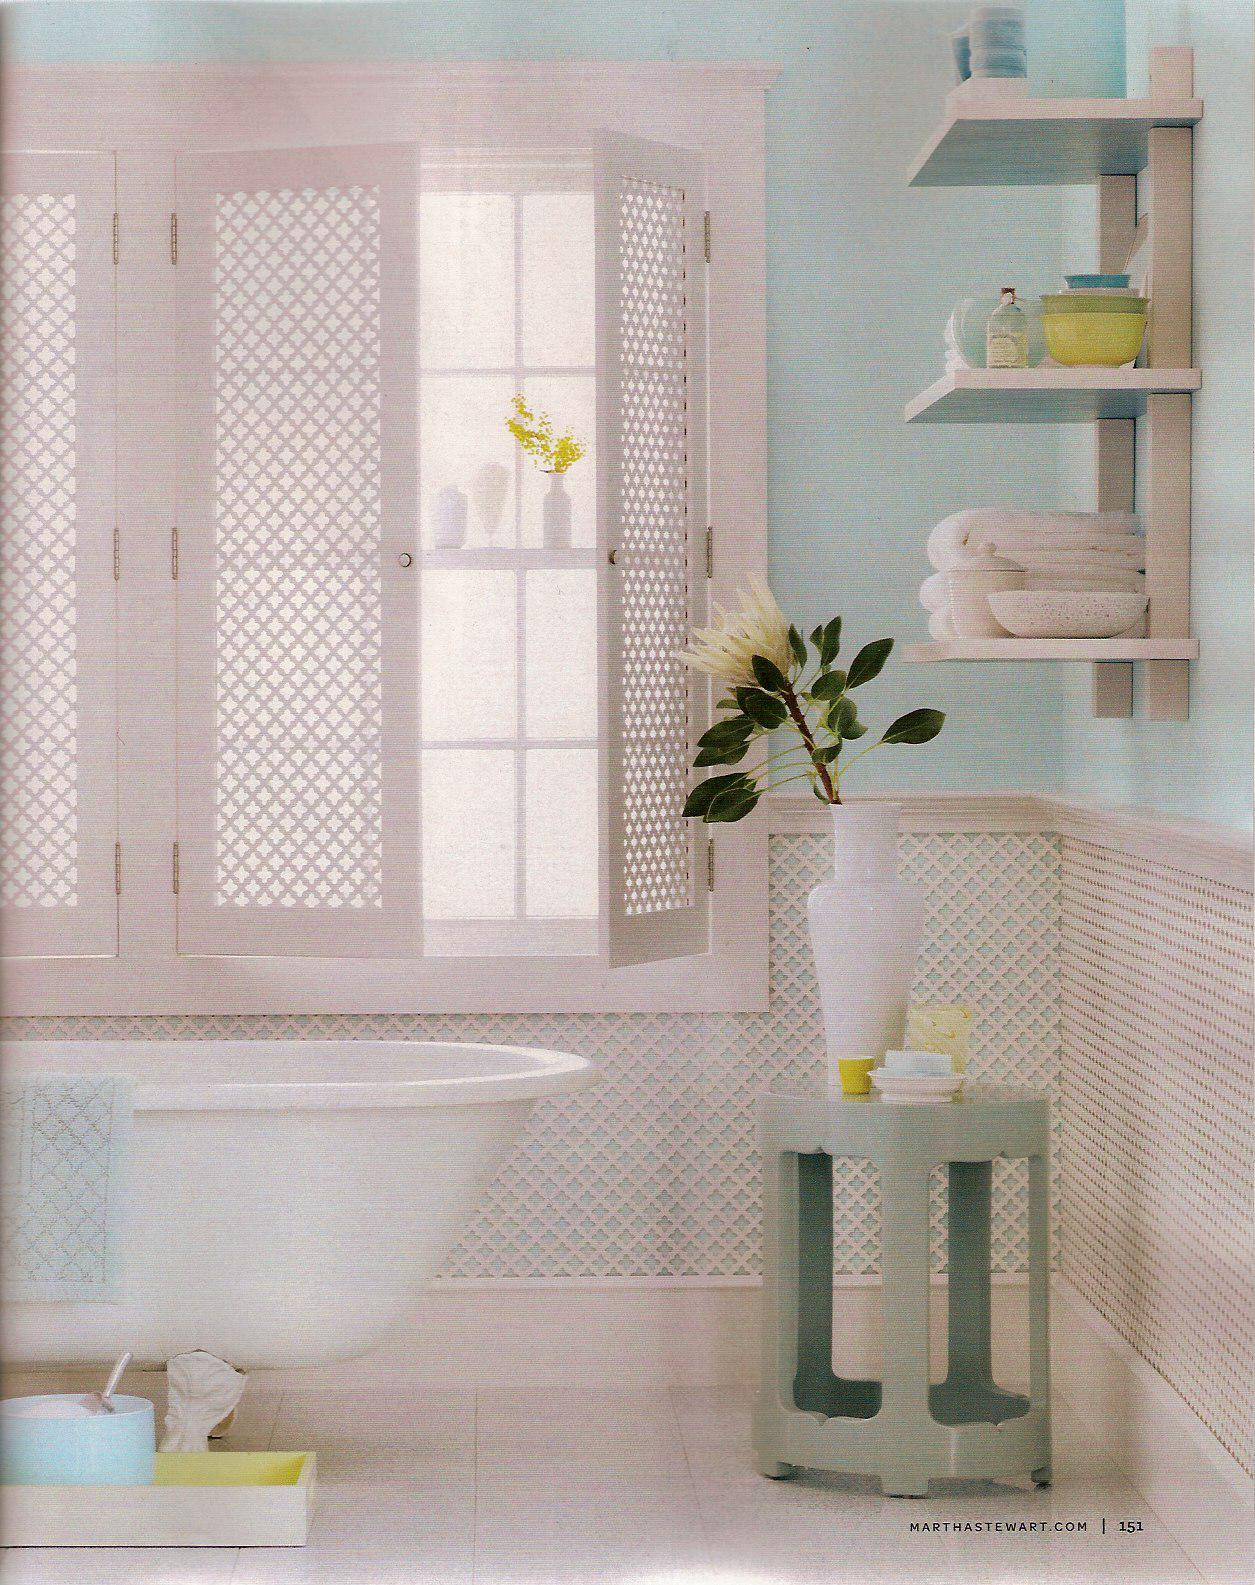 martha stewart bathroom ideas martha stewart simply healthy 20542